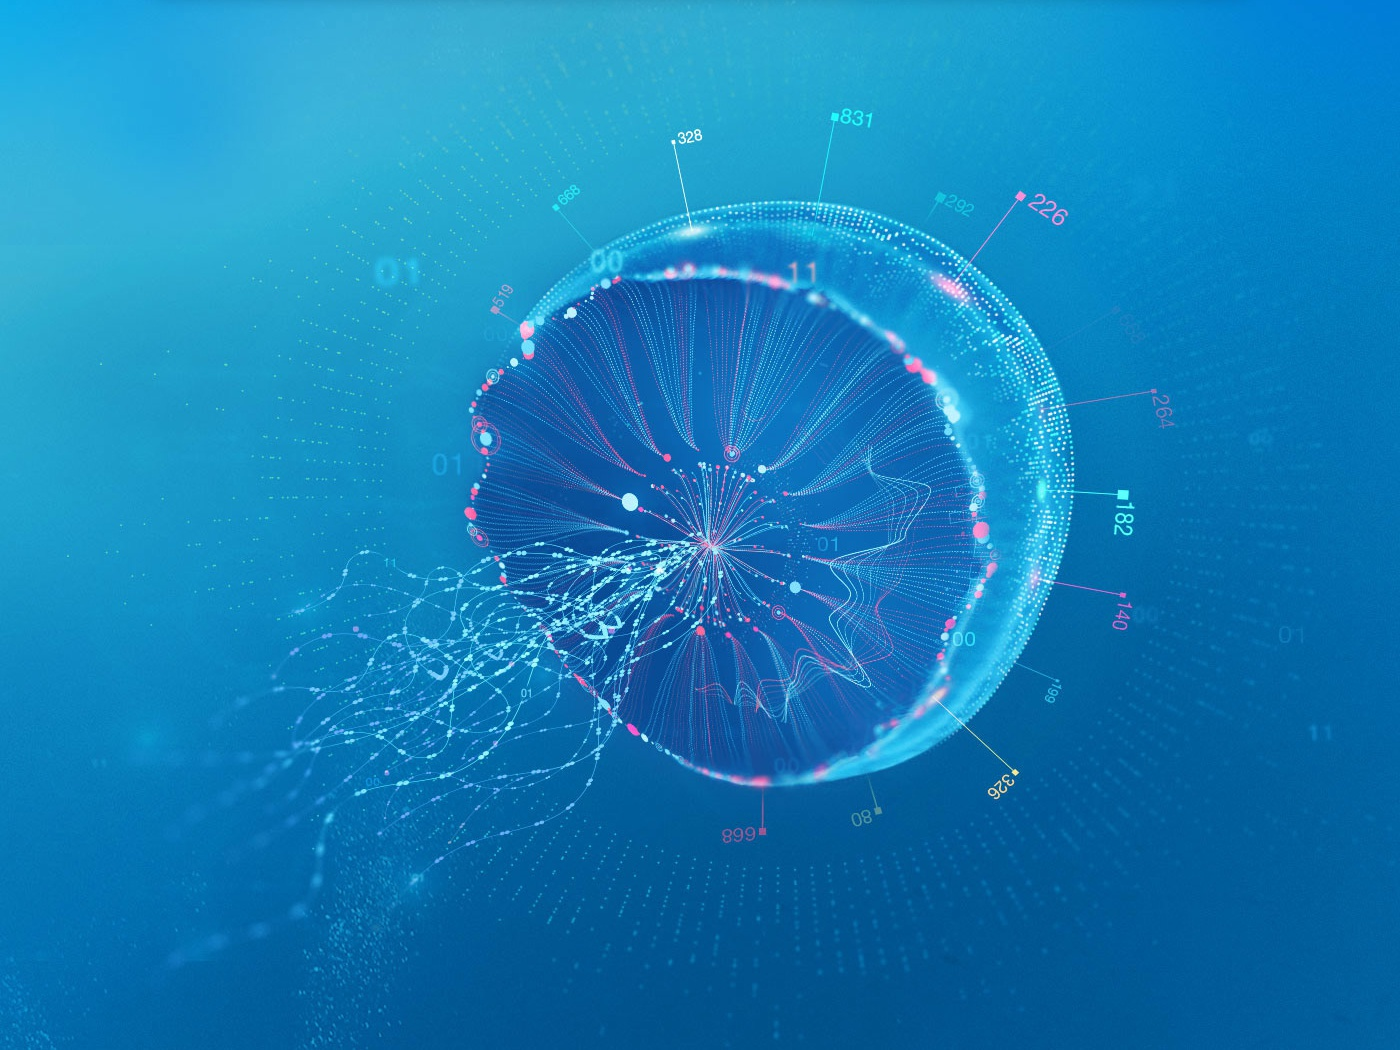 Data Creature glow numbers sea under the sea deep blue under art direction image making compositing creature jelly fish analitycs data analysis data ocean